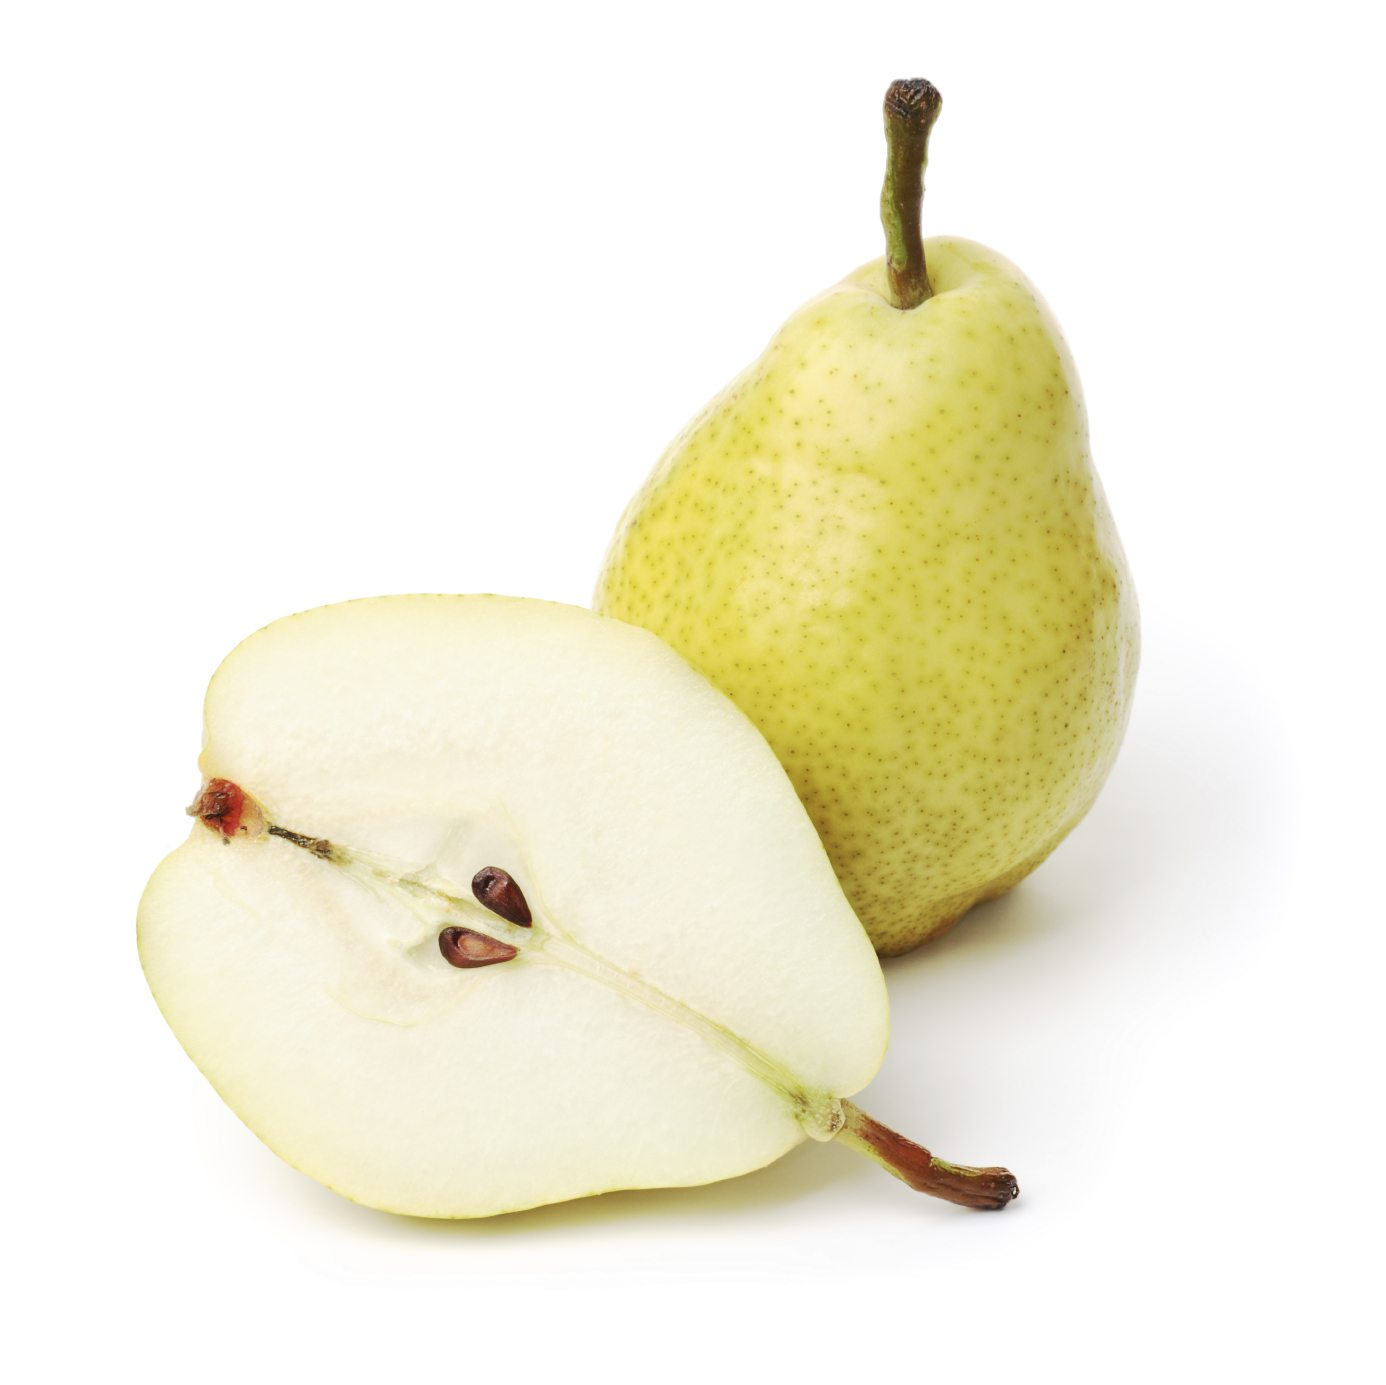 Saving Seeds From Pear